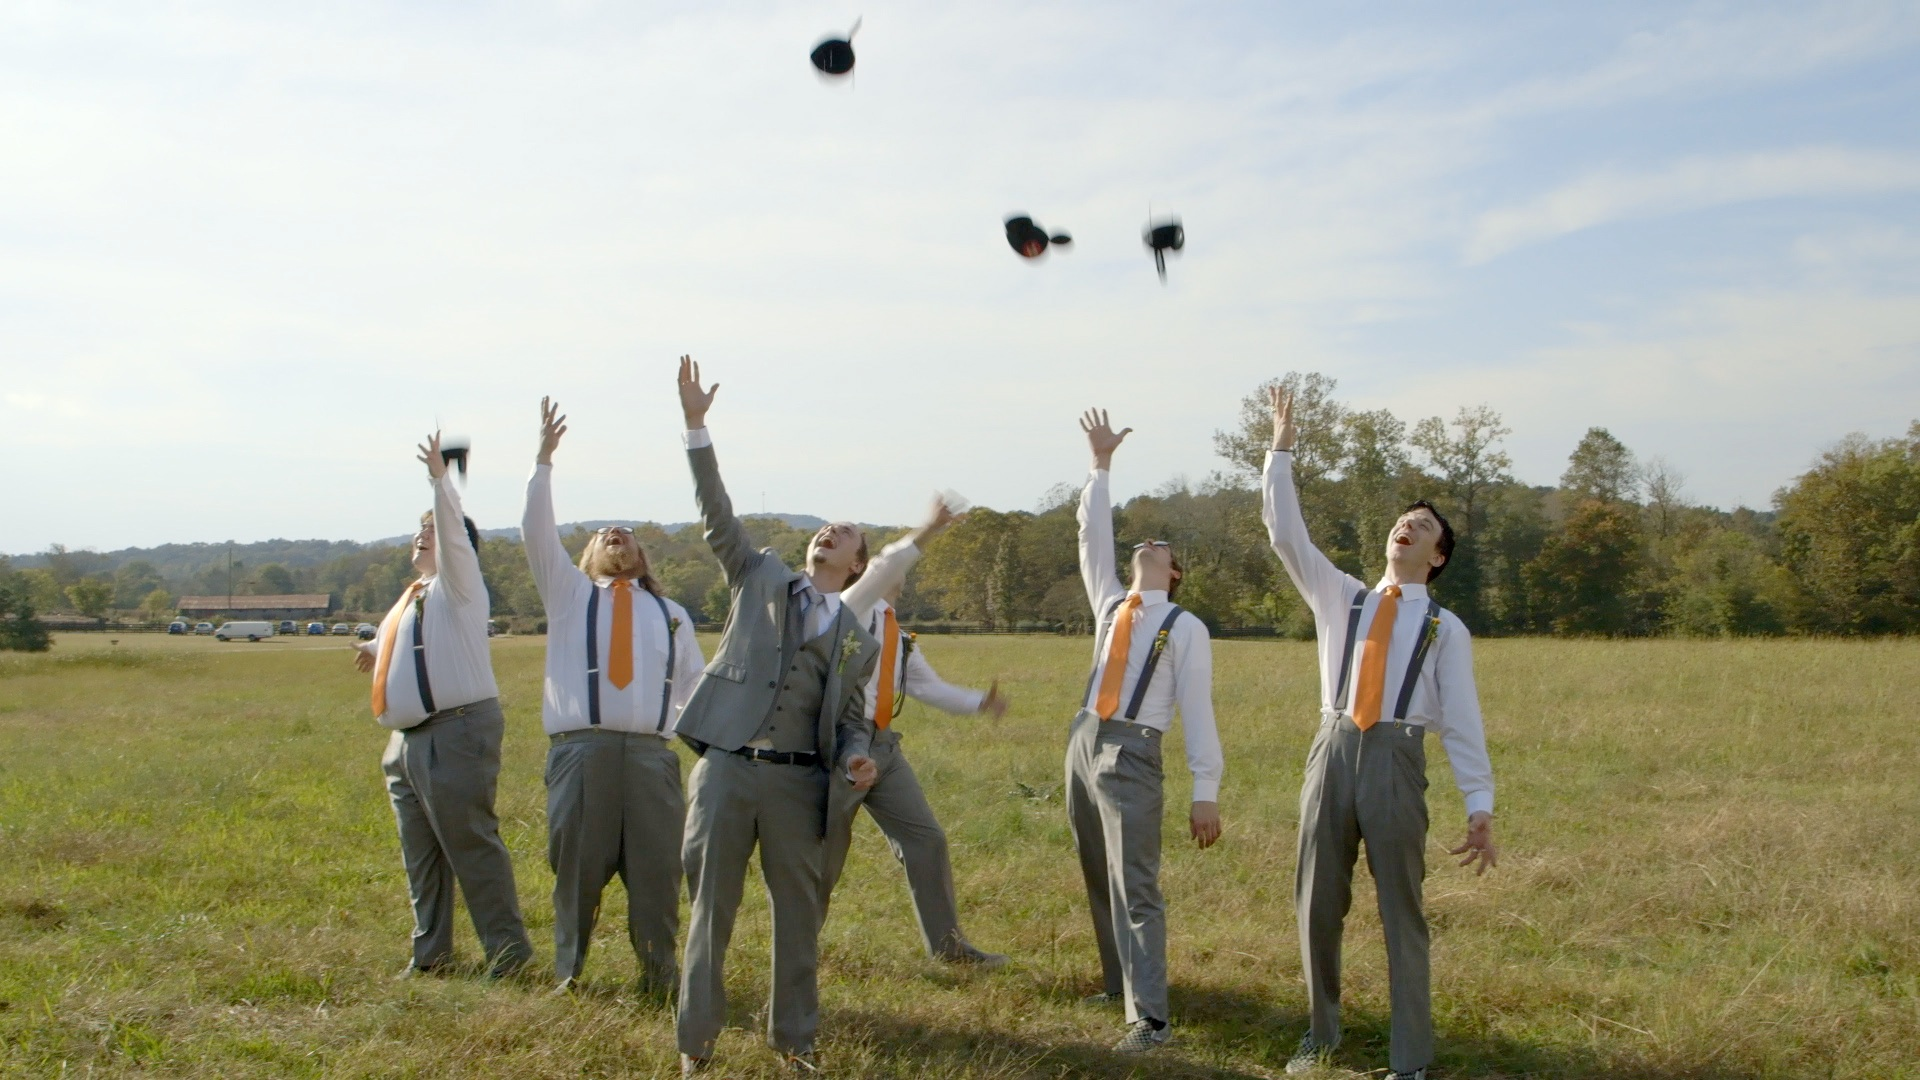 Jon and his groomsmen tossing their Mickey hats into the air for a photo op.